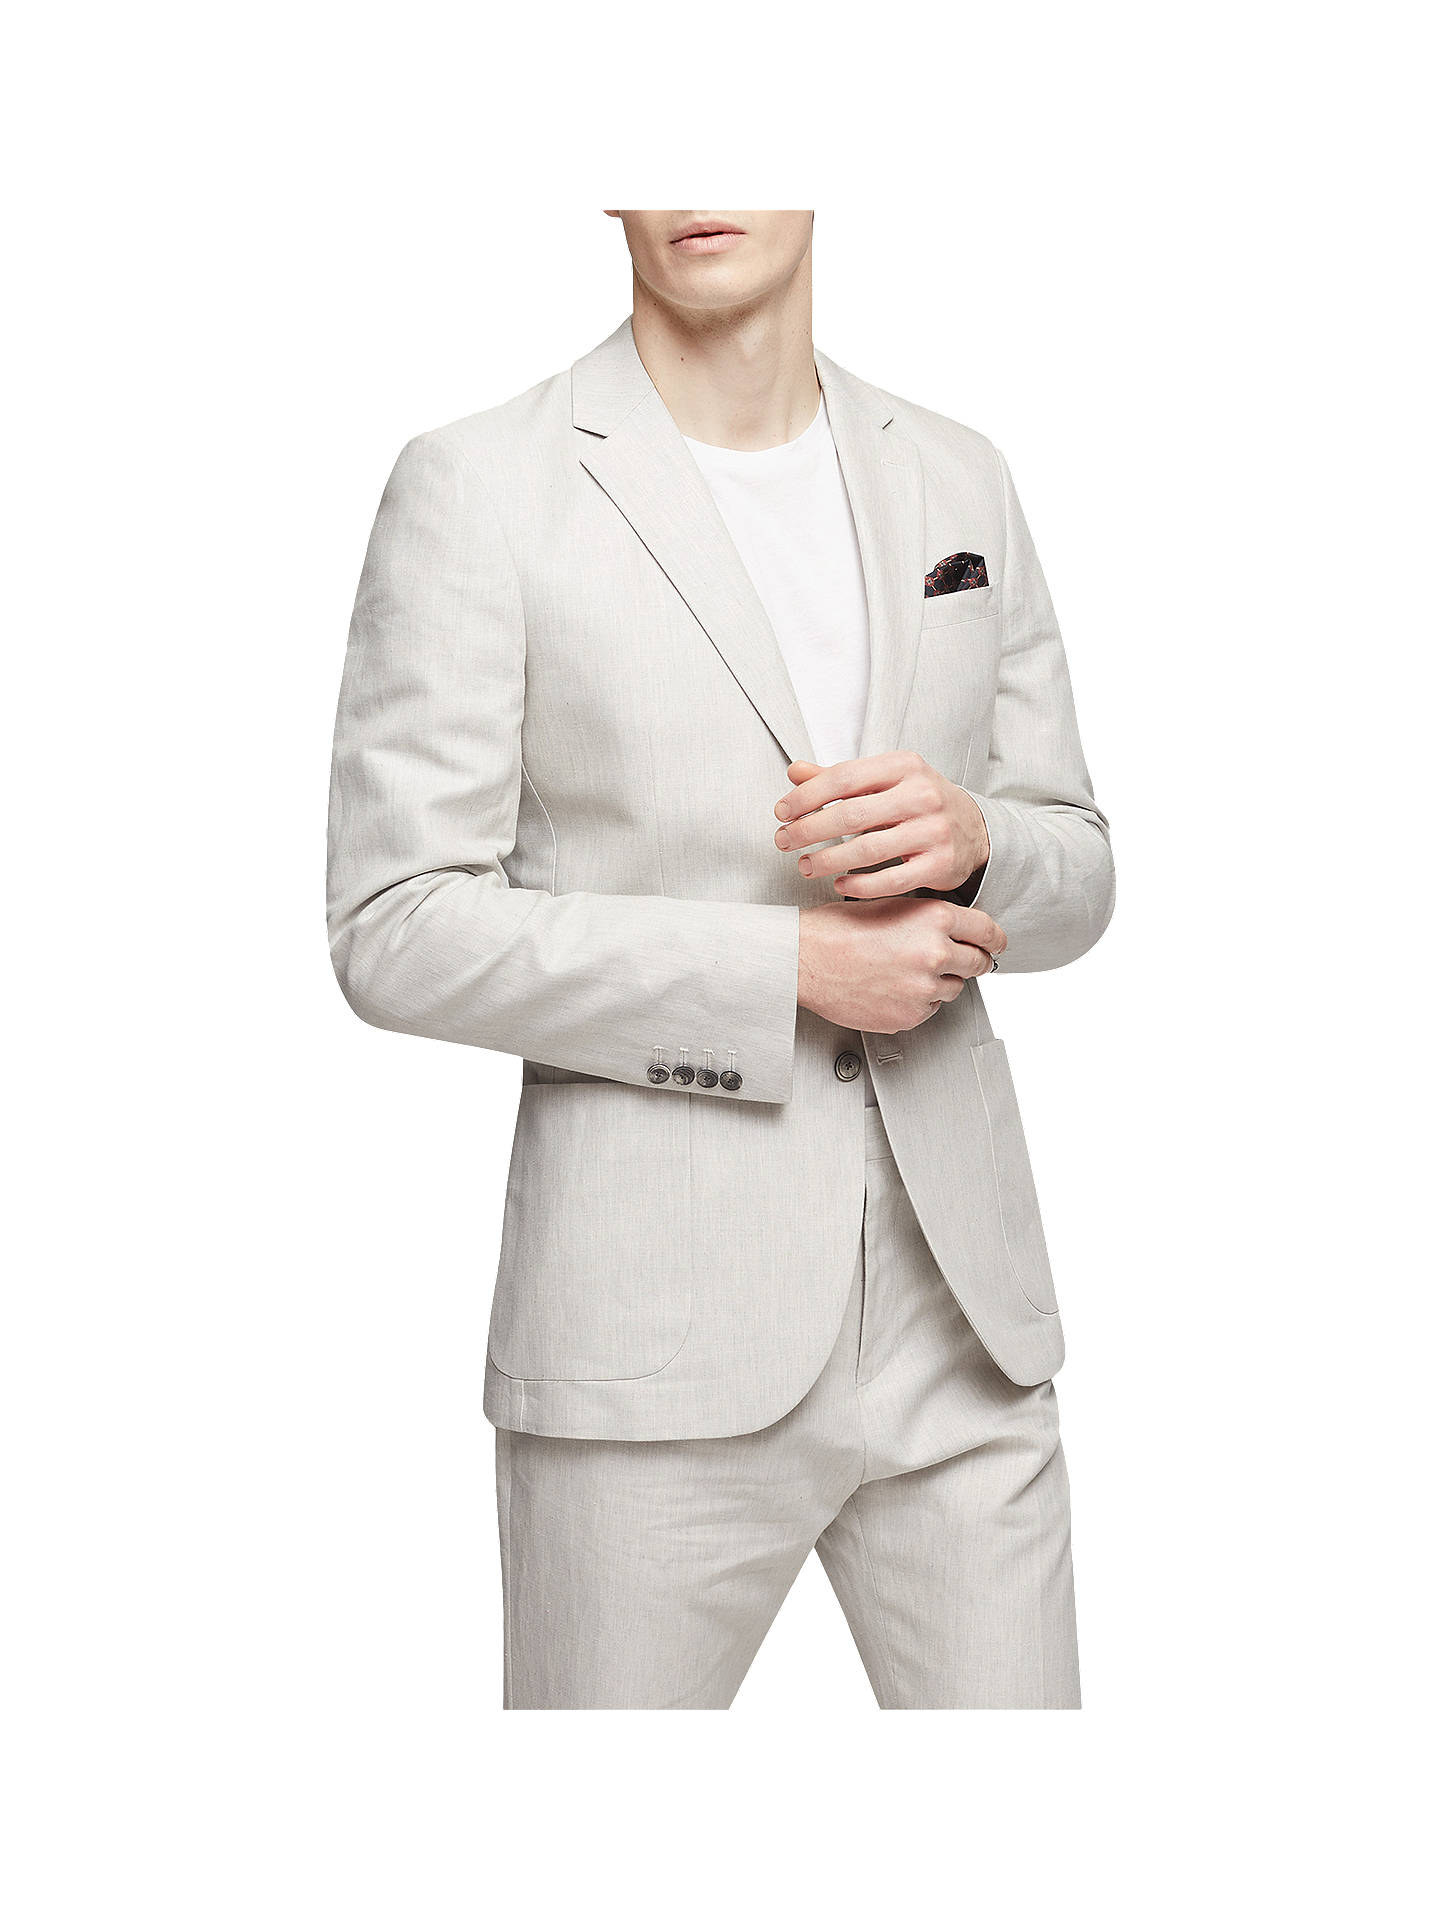 BuyReiss Chilwa Cotton Linen Slim Fit Suit Jacket, Natural, 34R Online at johnlewis.com